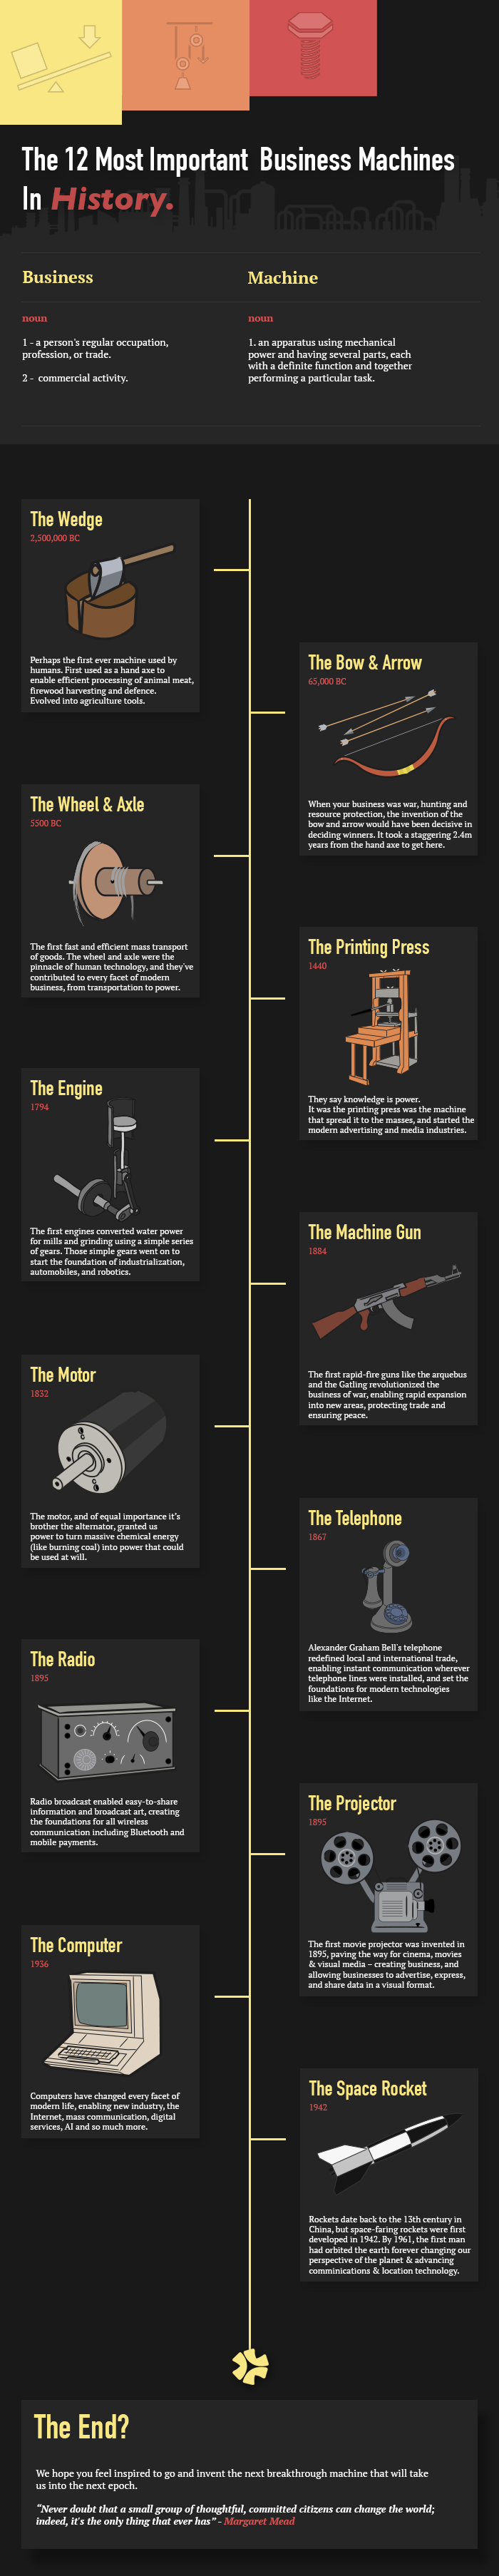 Business Machines Infographic HQ